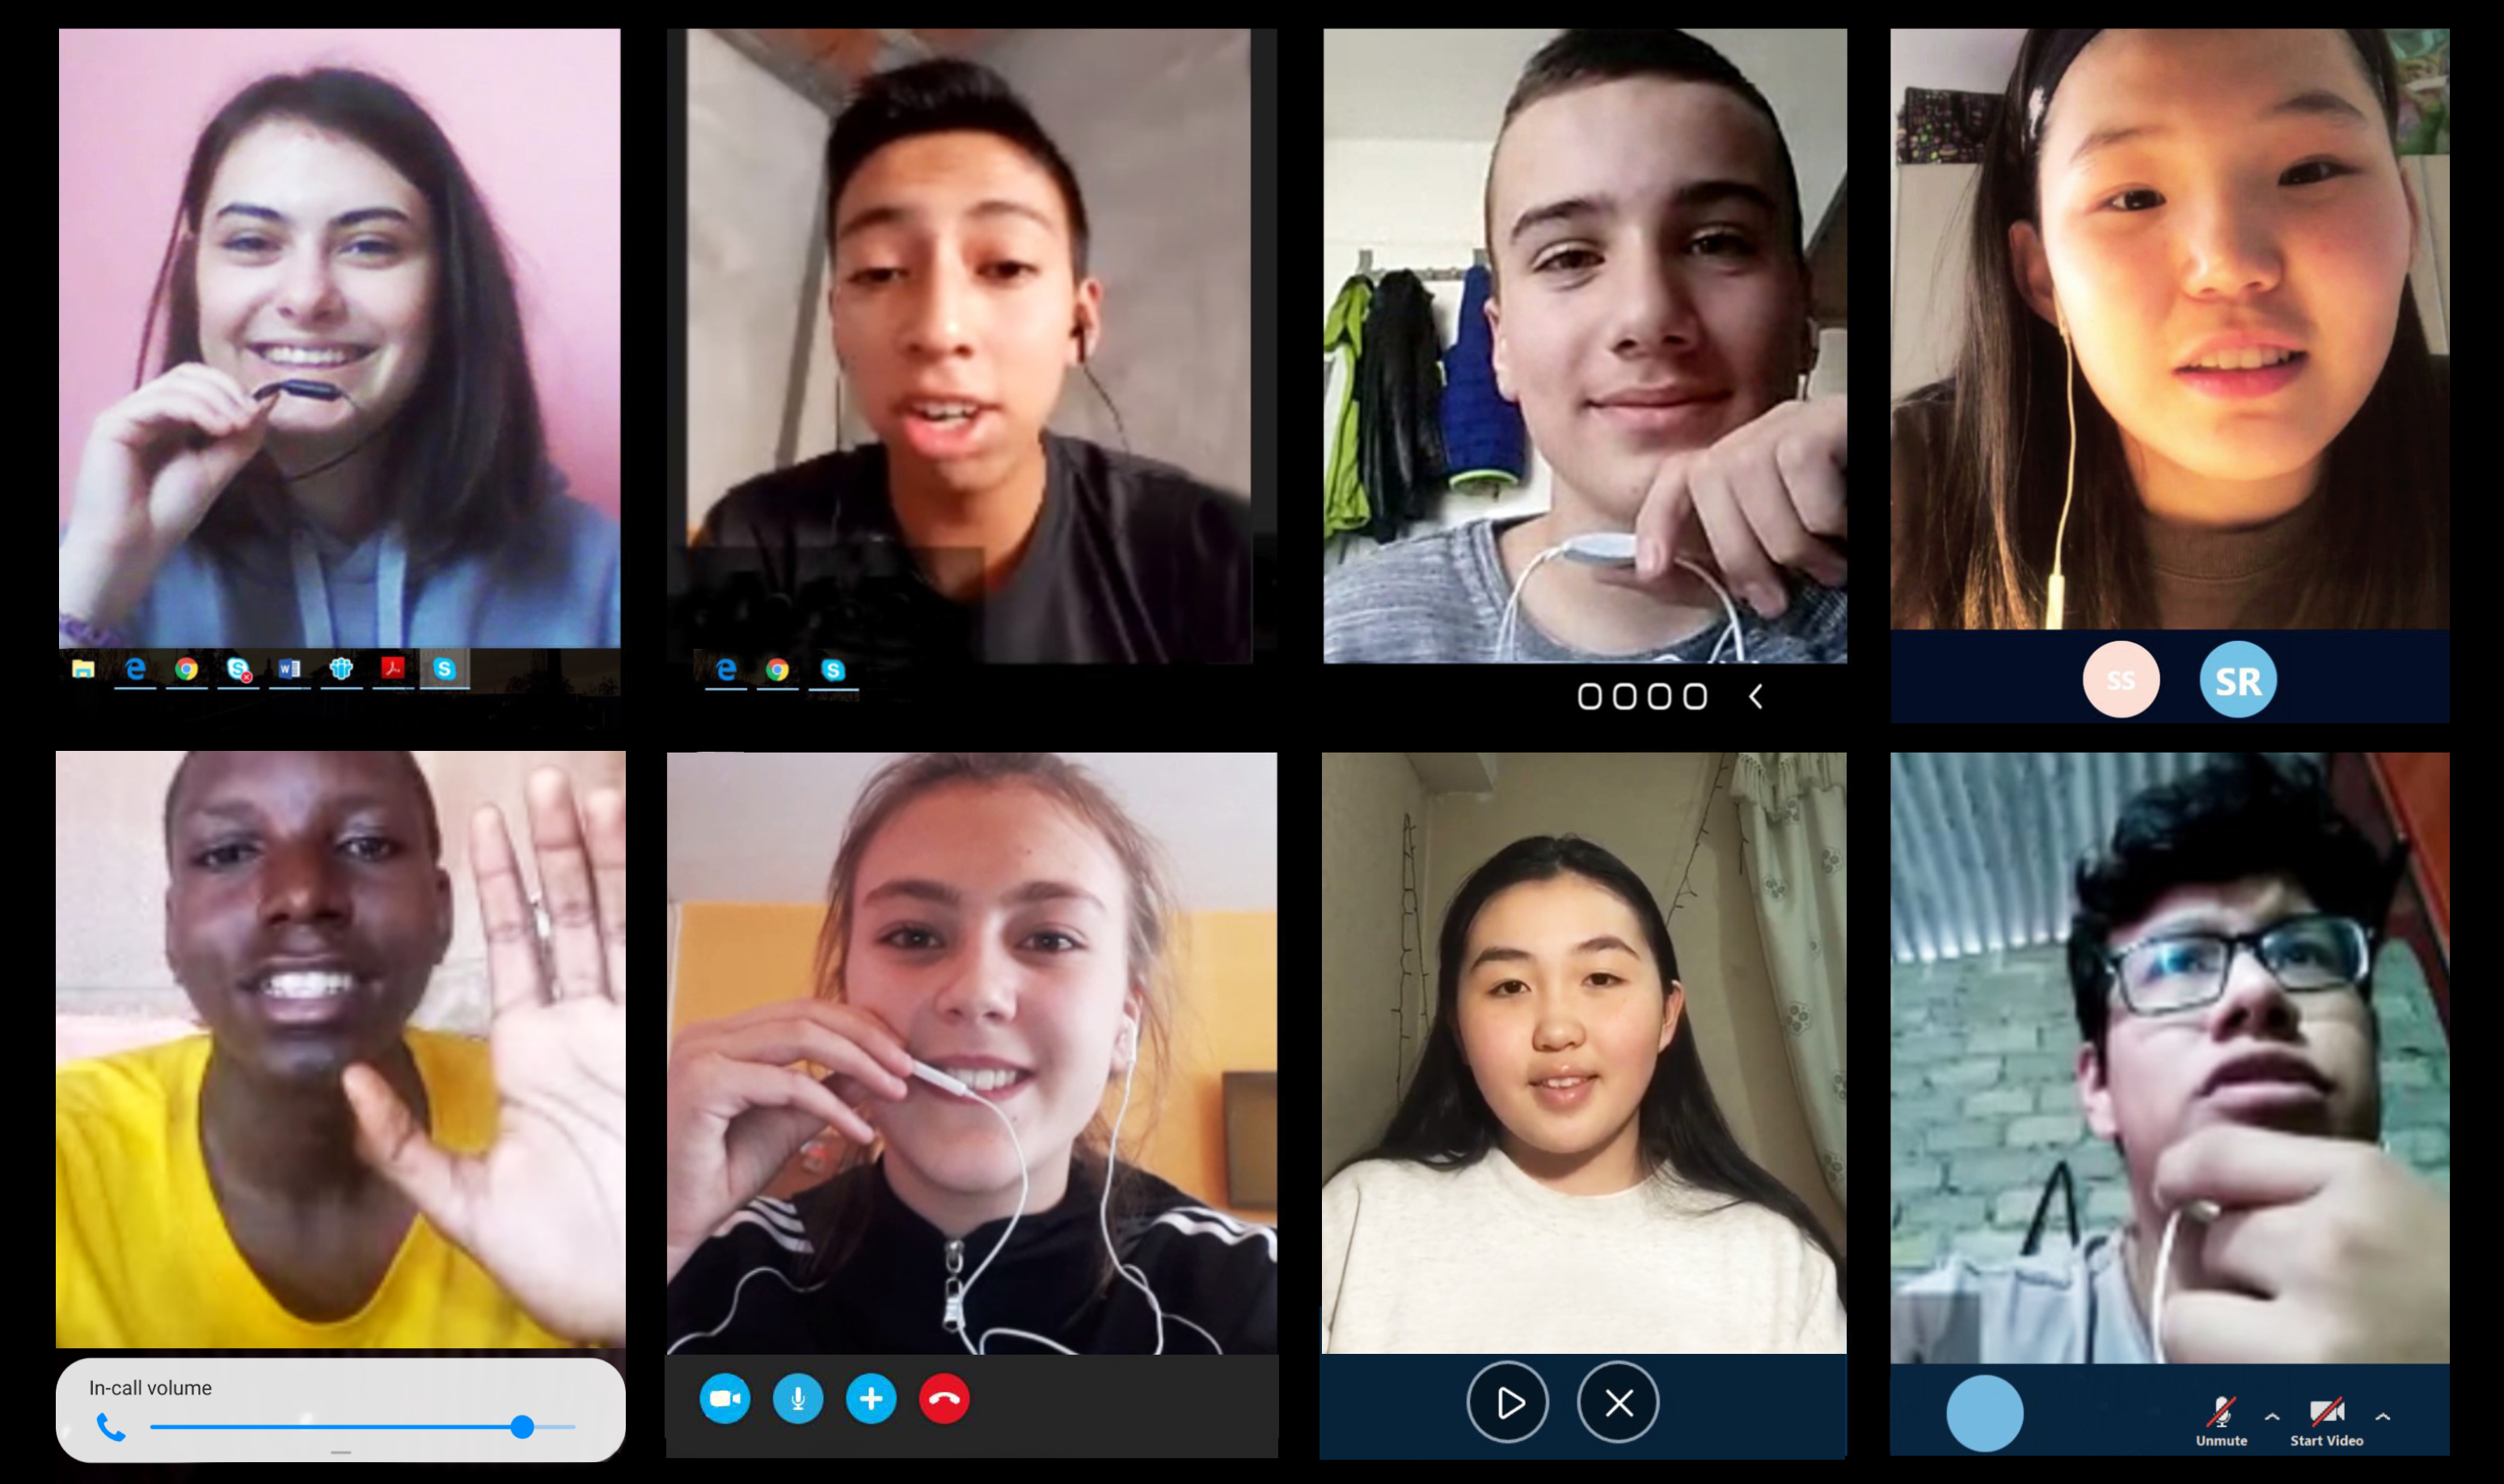 Screenshot of a group of children participating in an online video call.